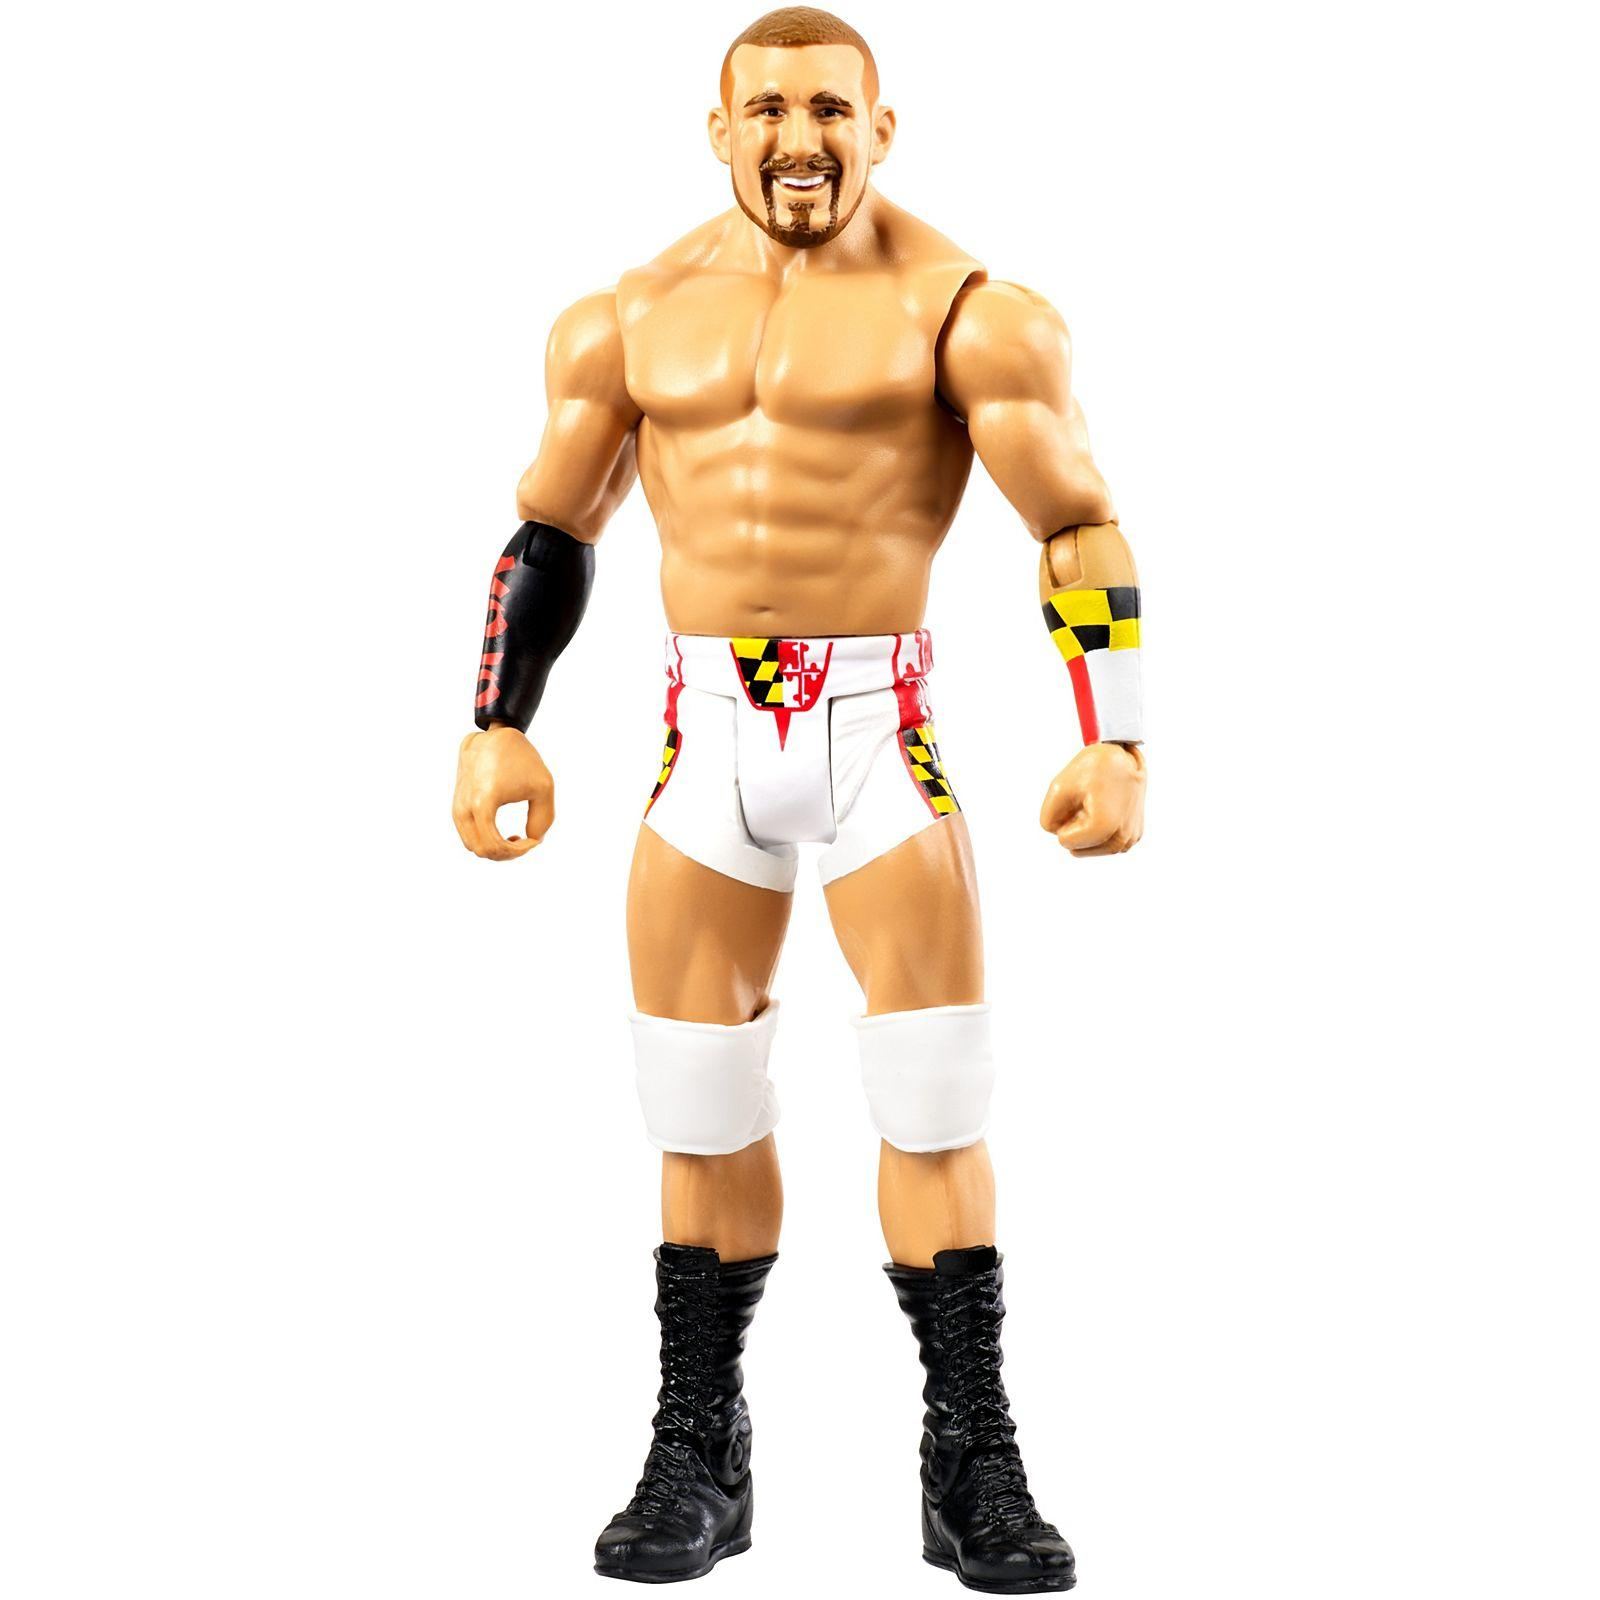 WWE Wrestlemania Mojo Rawley1